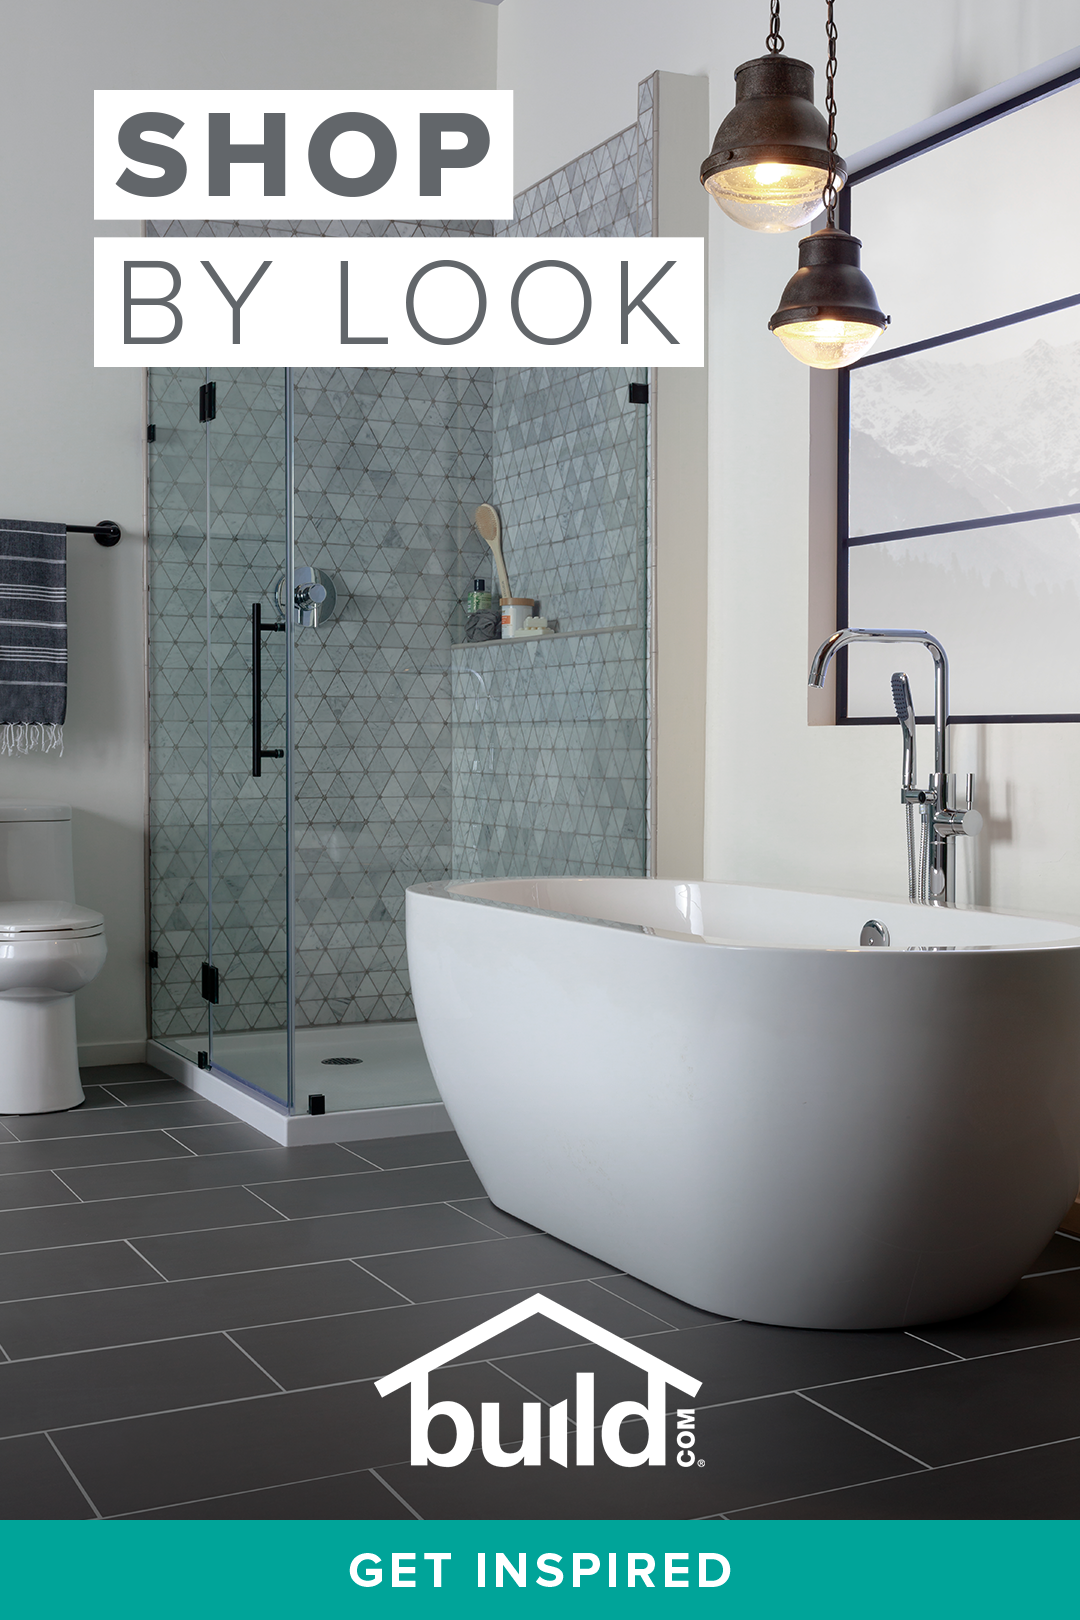 Update Your Bathroom With The Best Brands Finishes And Styles Home Improvement Grants Bathroom Remodel Master Home Improvement Blogs